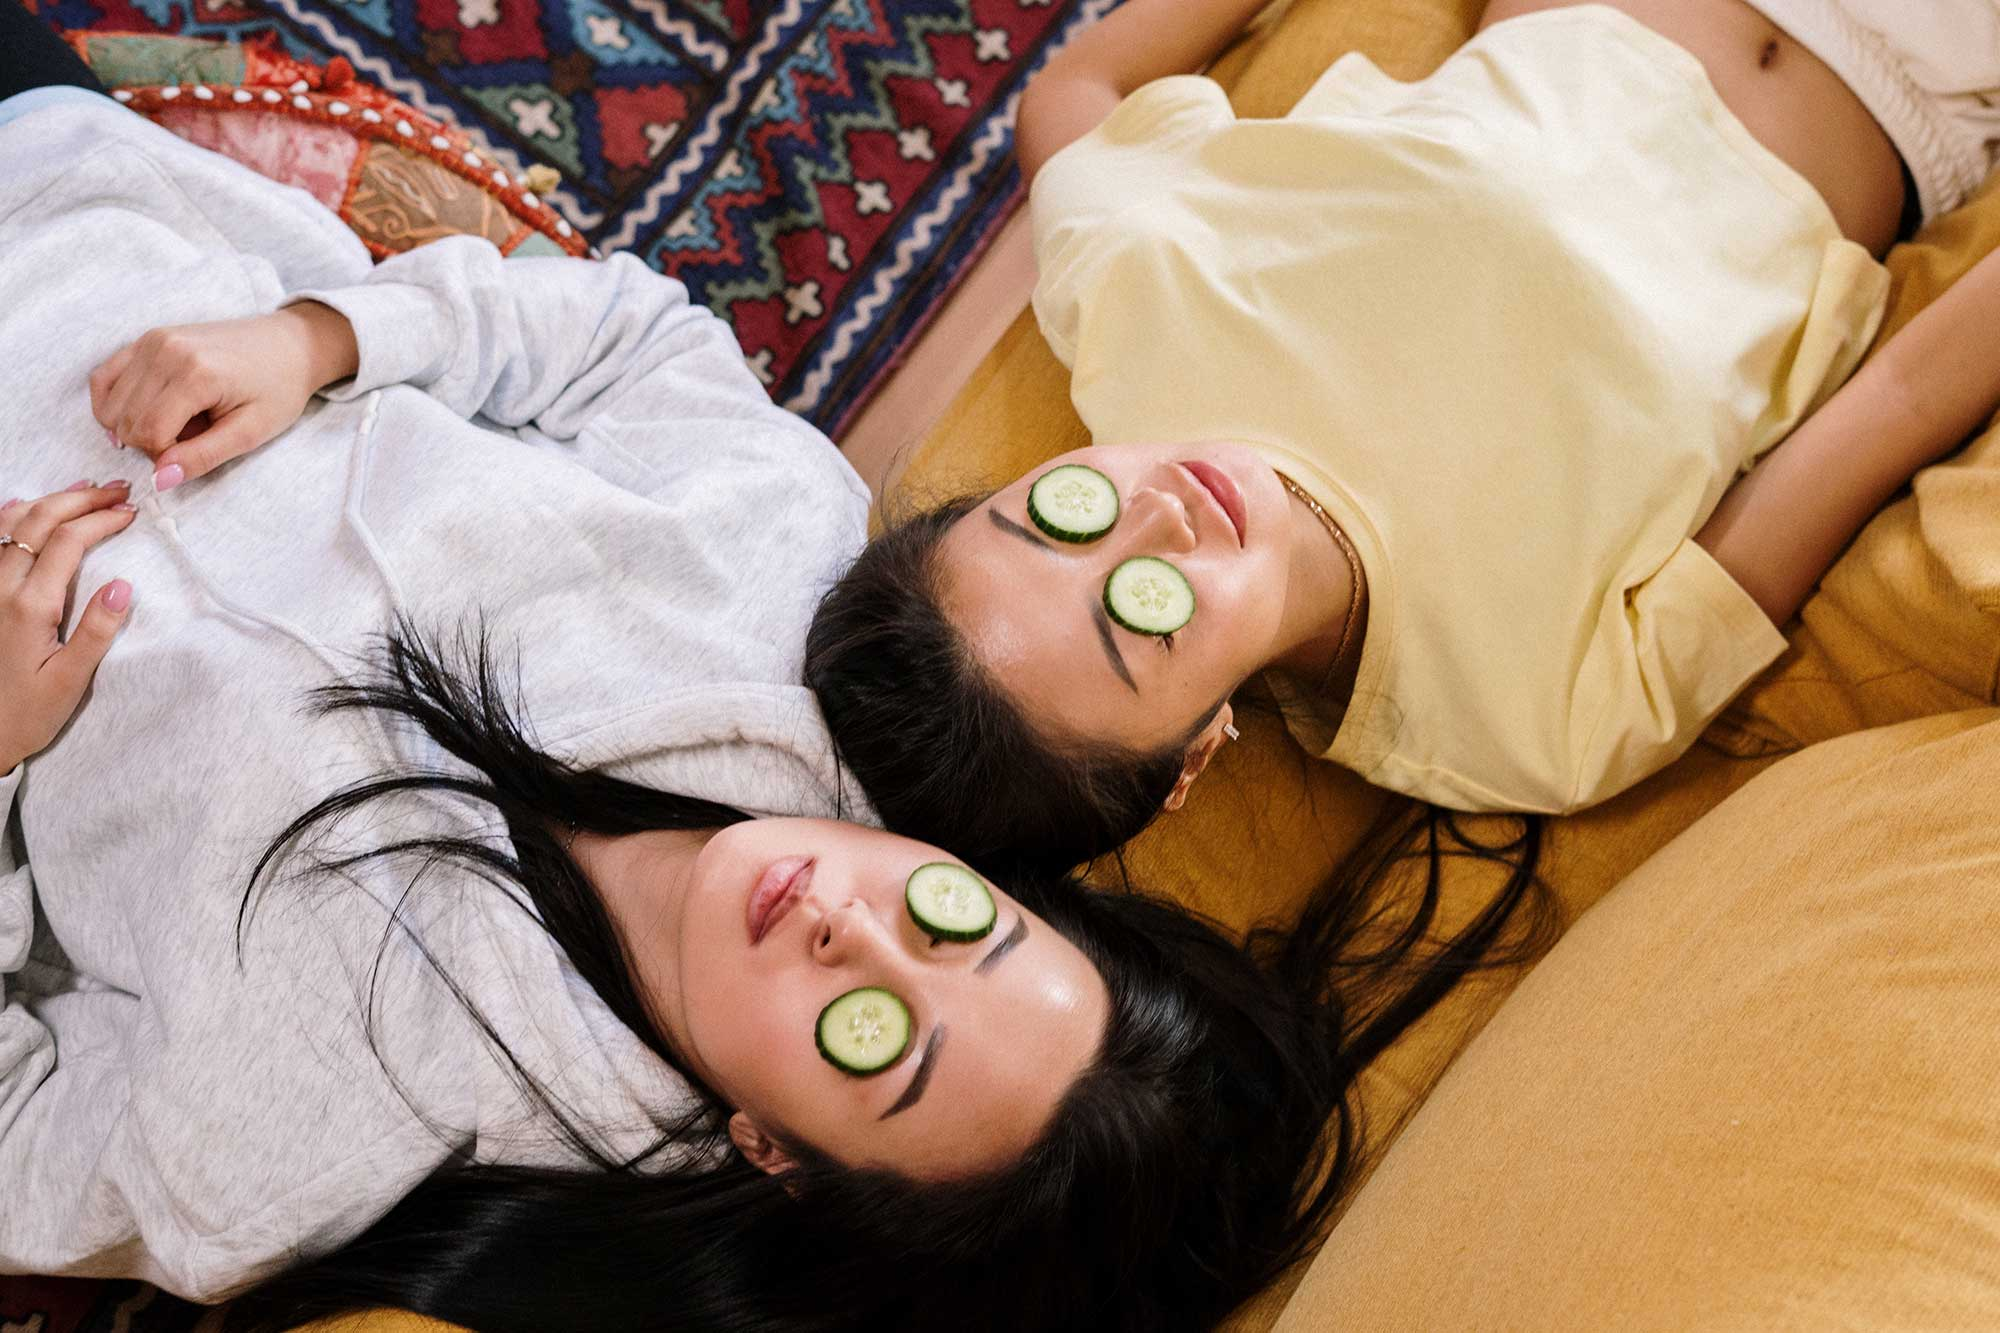 Two women lying down with cucumbers over their eyes